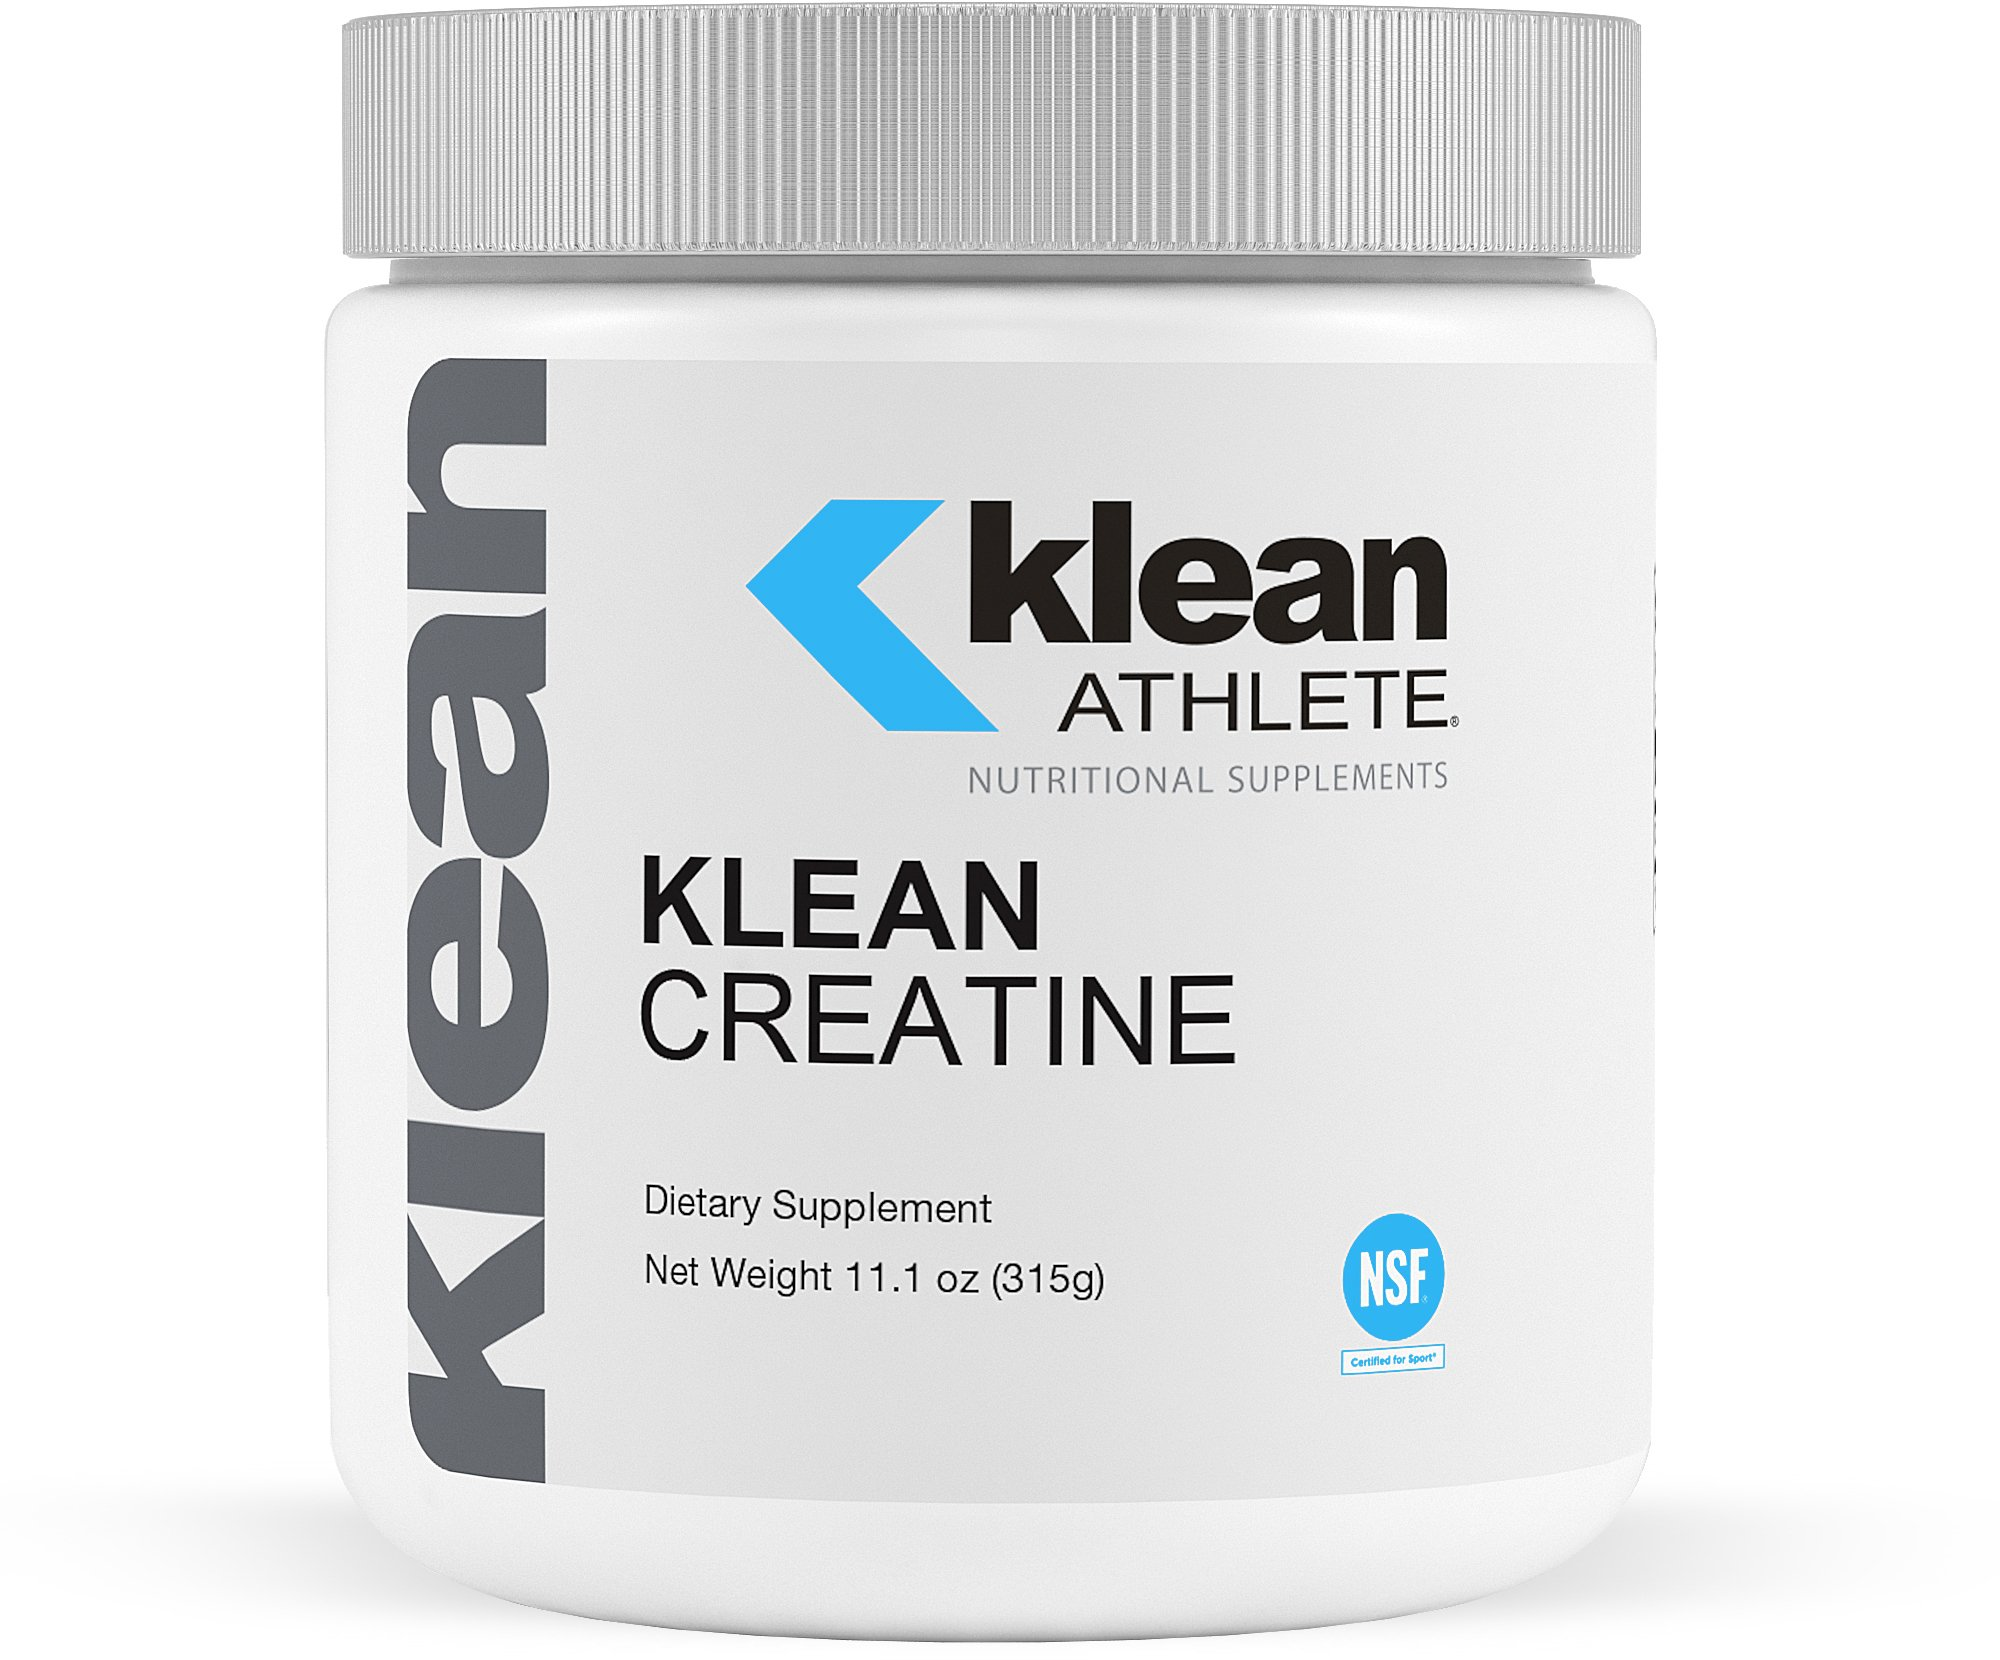 Klean Athlete - Klean Creatine - Supports Muscle Strength, Performance, and Recovery from Strenuous Exercise - NSF Certified for Sport - Unflavored - 11.1 oz (315 g)